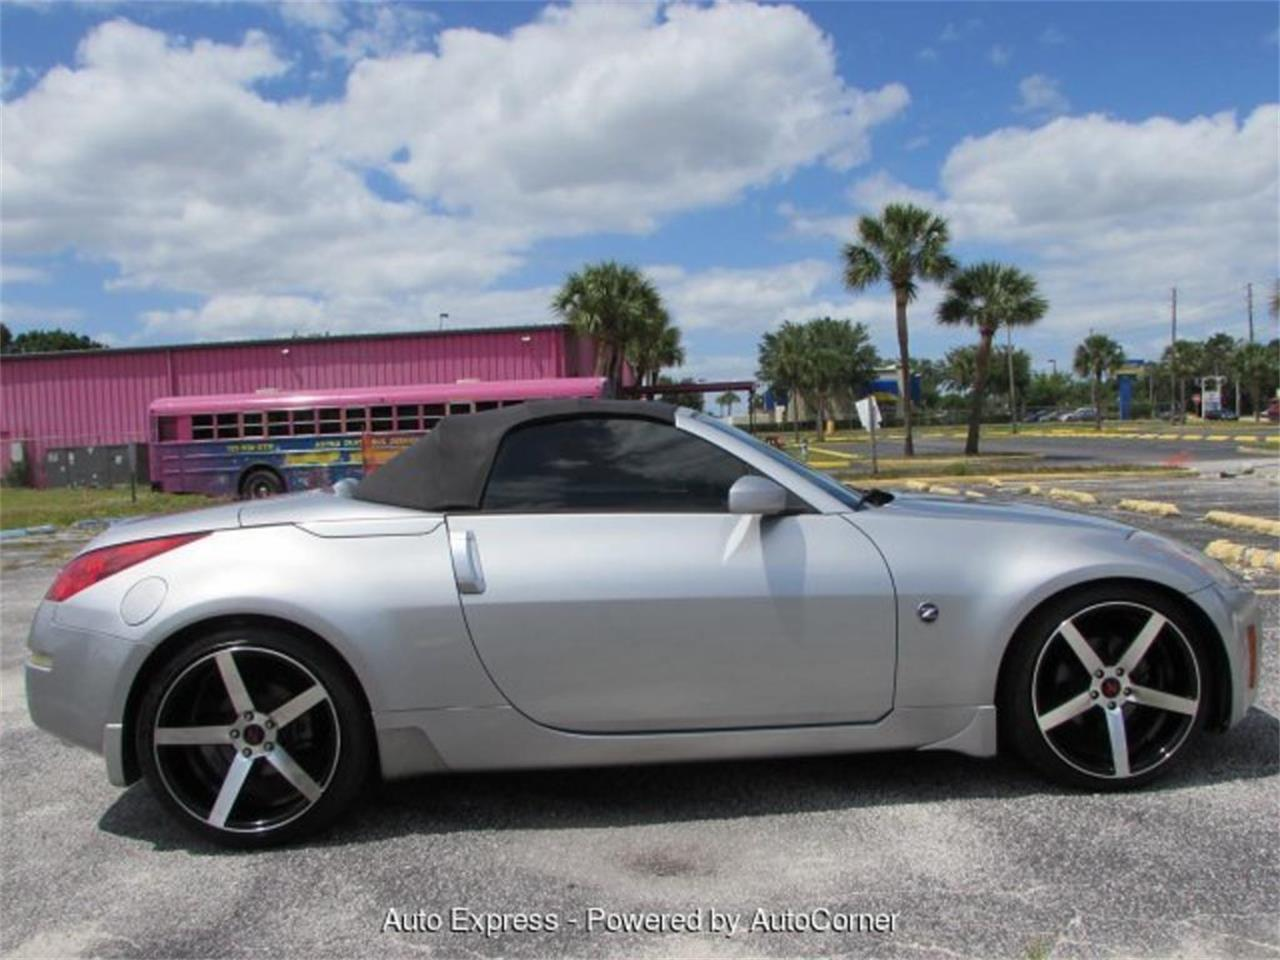 Large Picture of 2005 Nissan 350Z located in Florida - $9,999.00 Offered by Auto Express - Q2AX